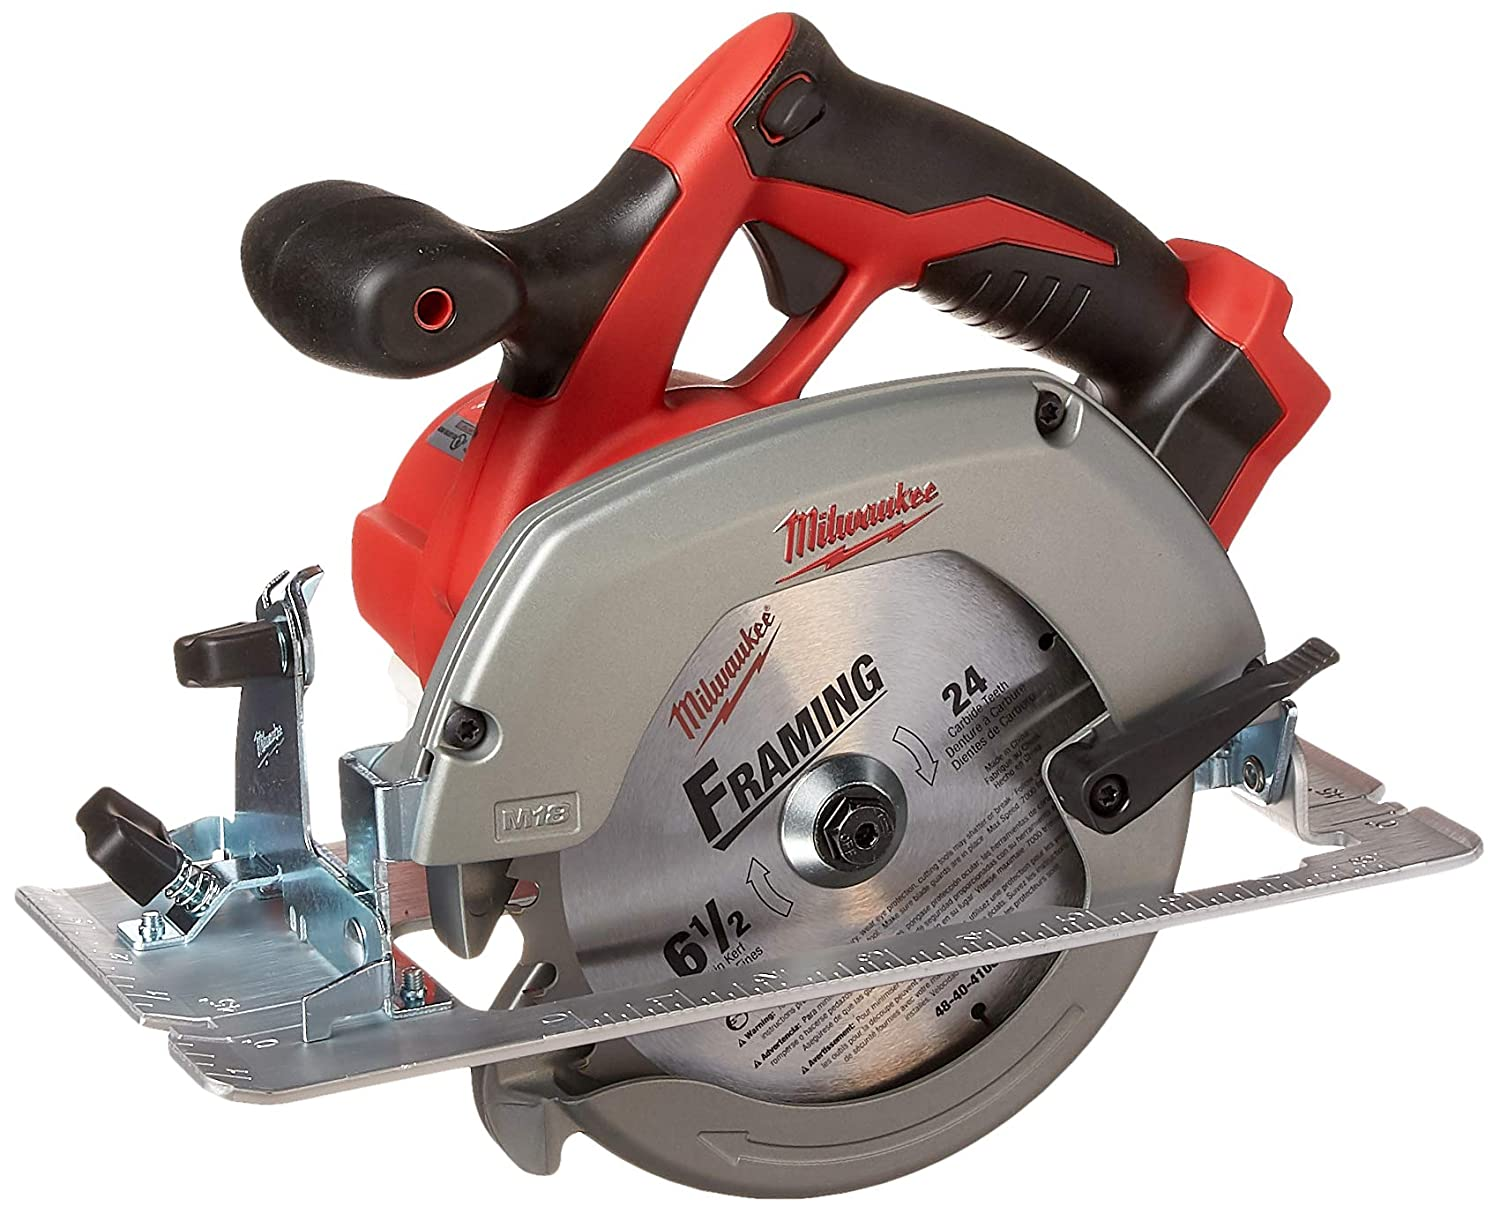 Milwaukee M18 2630-20 18 Volt Lithium Ion 6-1 2 3,500 RPM Cordless Circular Saw w Magnesium Guards and Included 24-Tooth Carbide Wood Cutting Blade